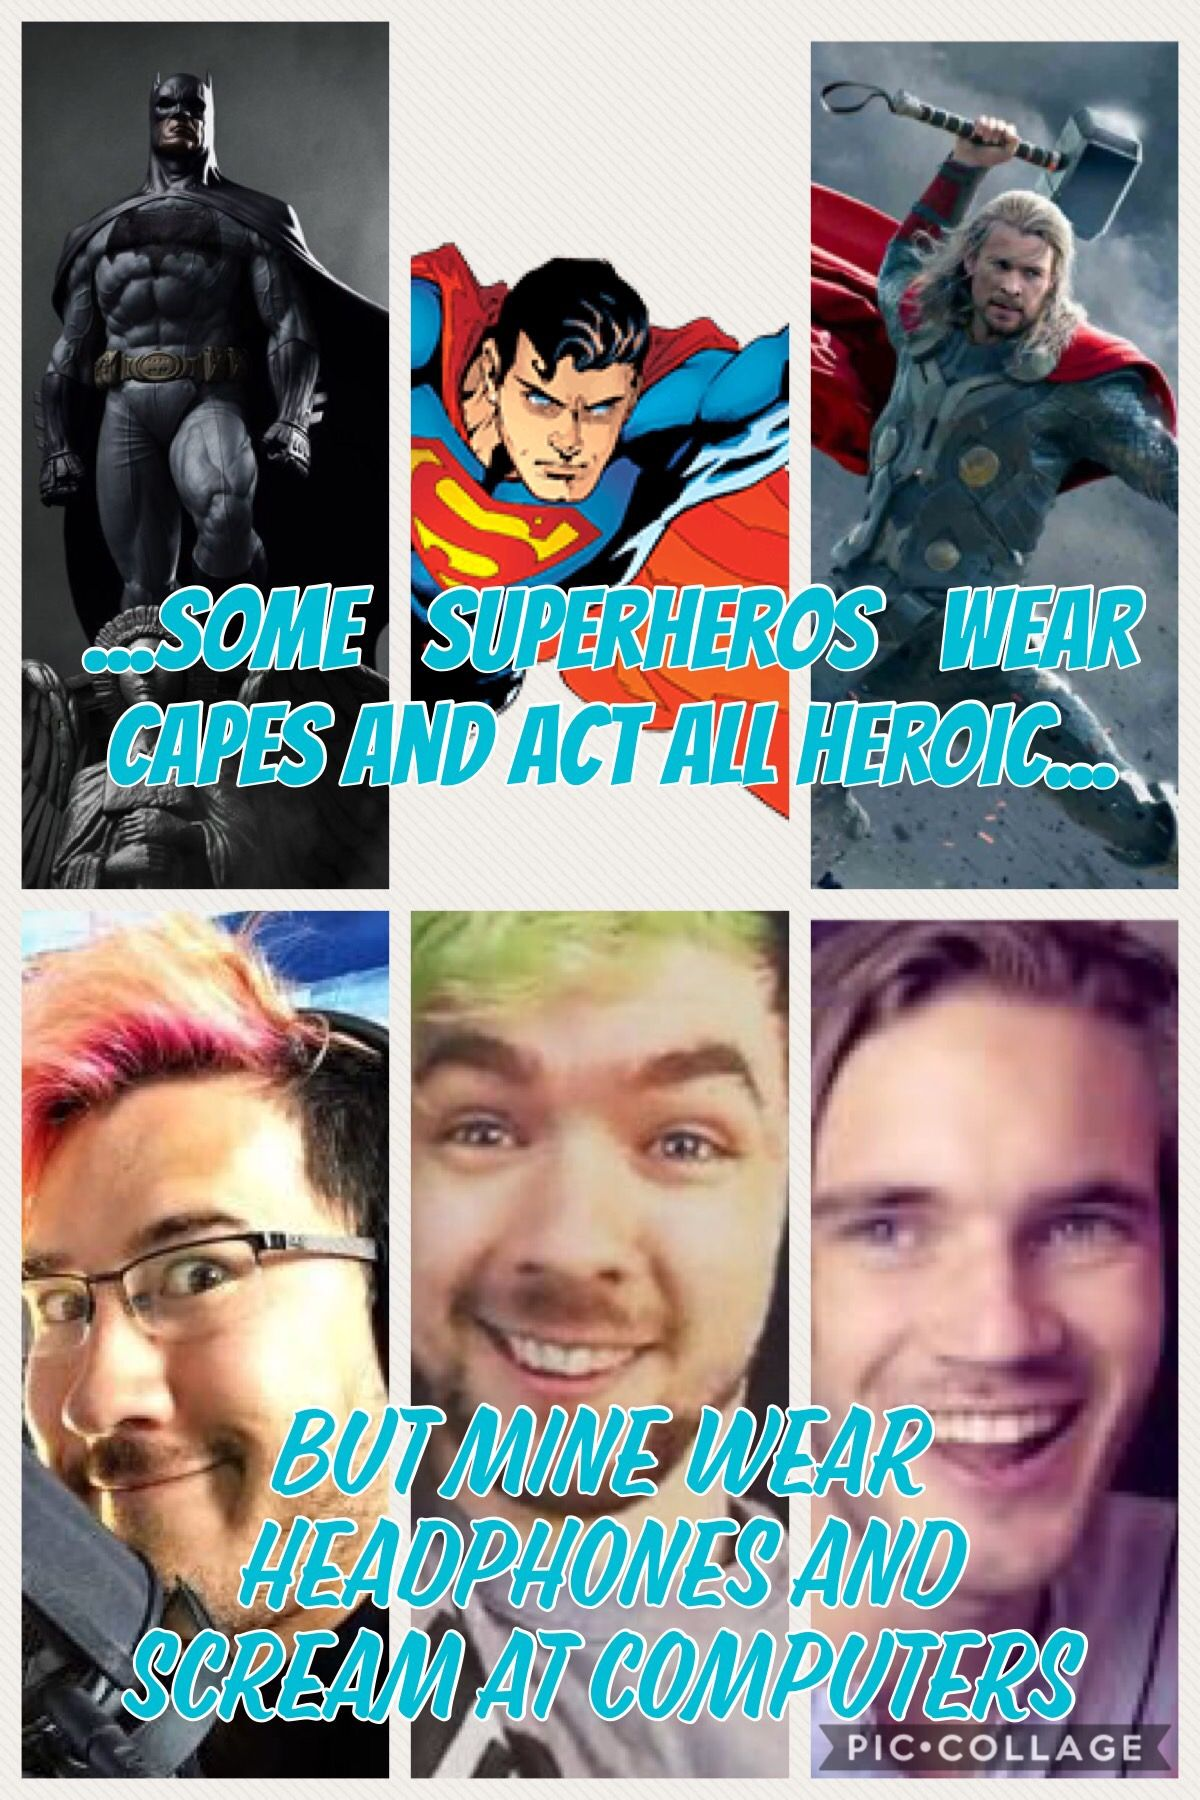 ❤️❤️❤️ Thank you guys for being my heroes